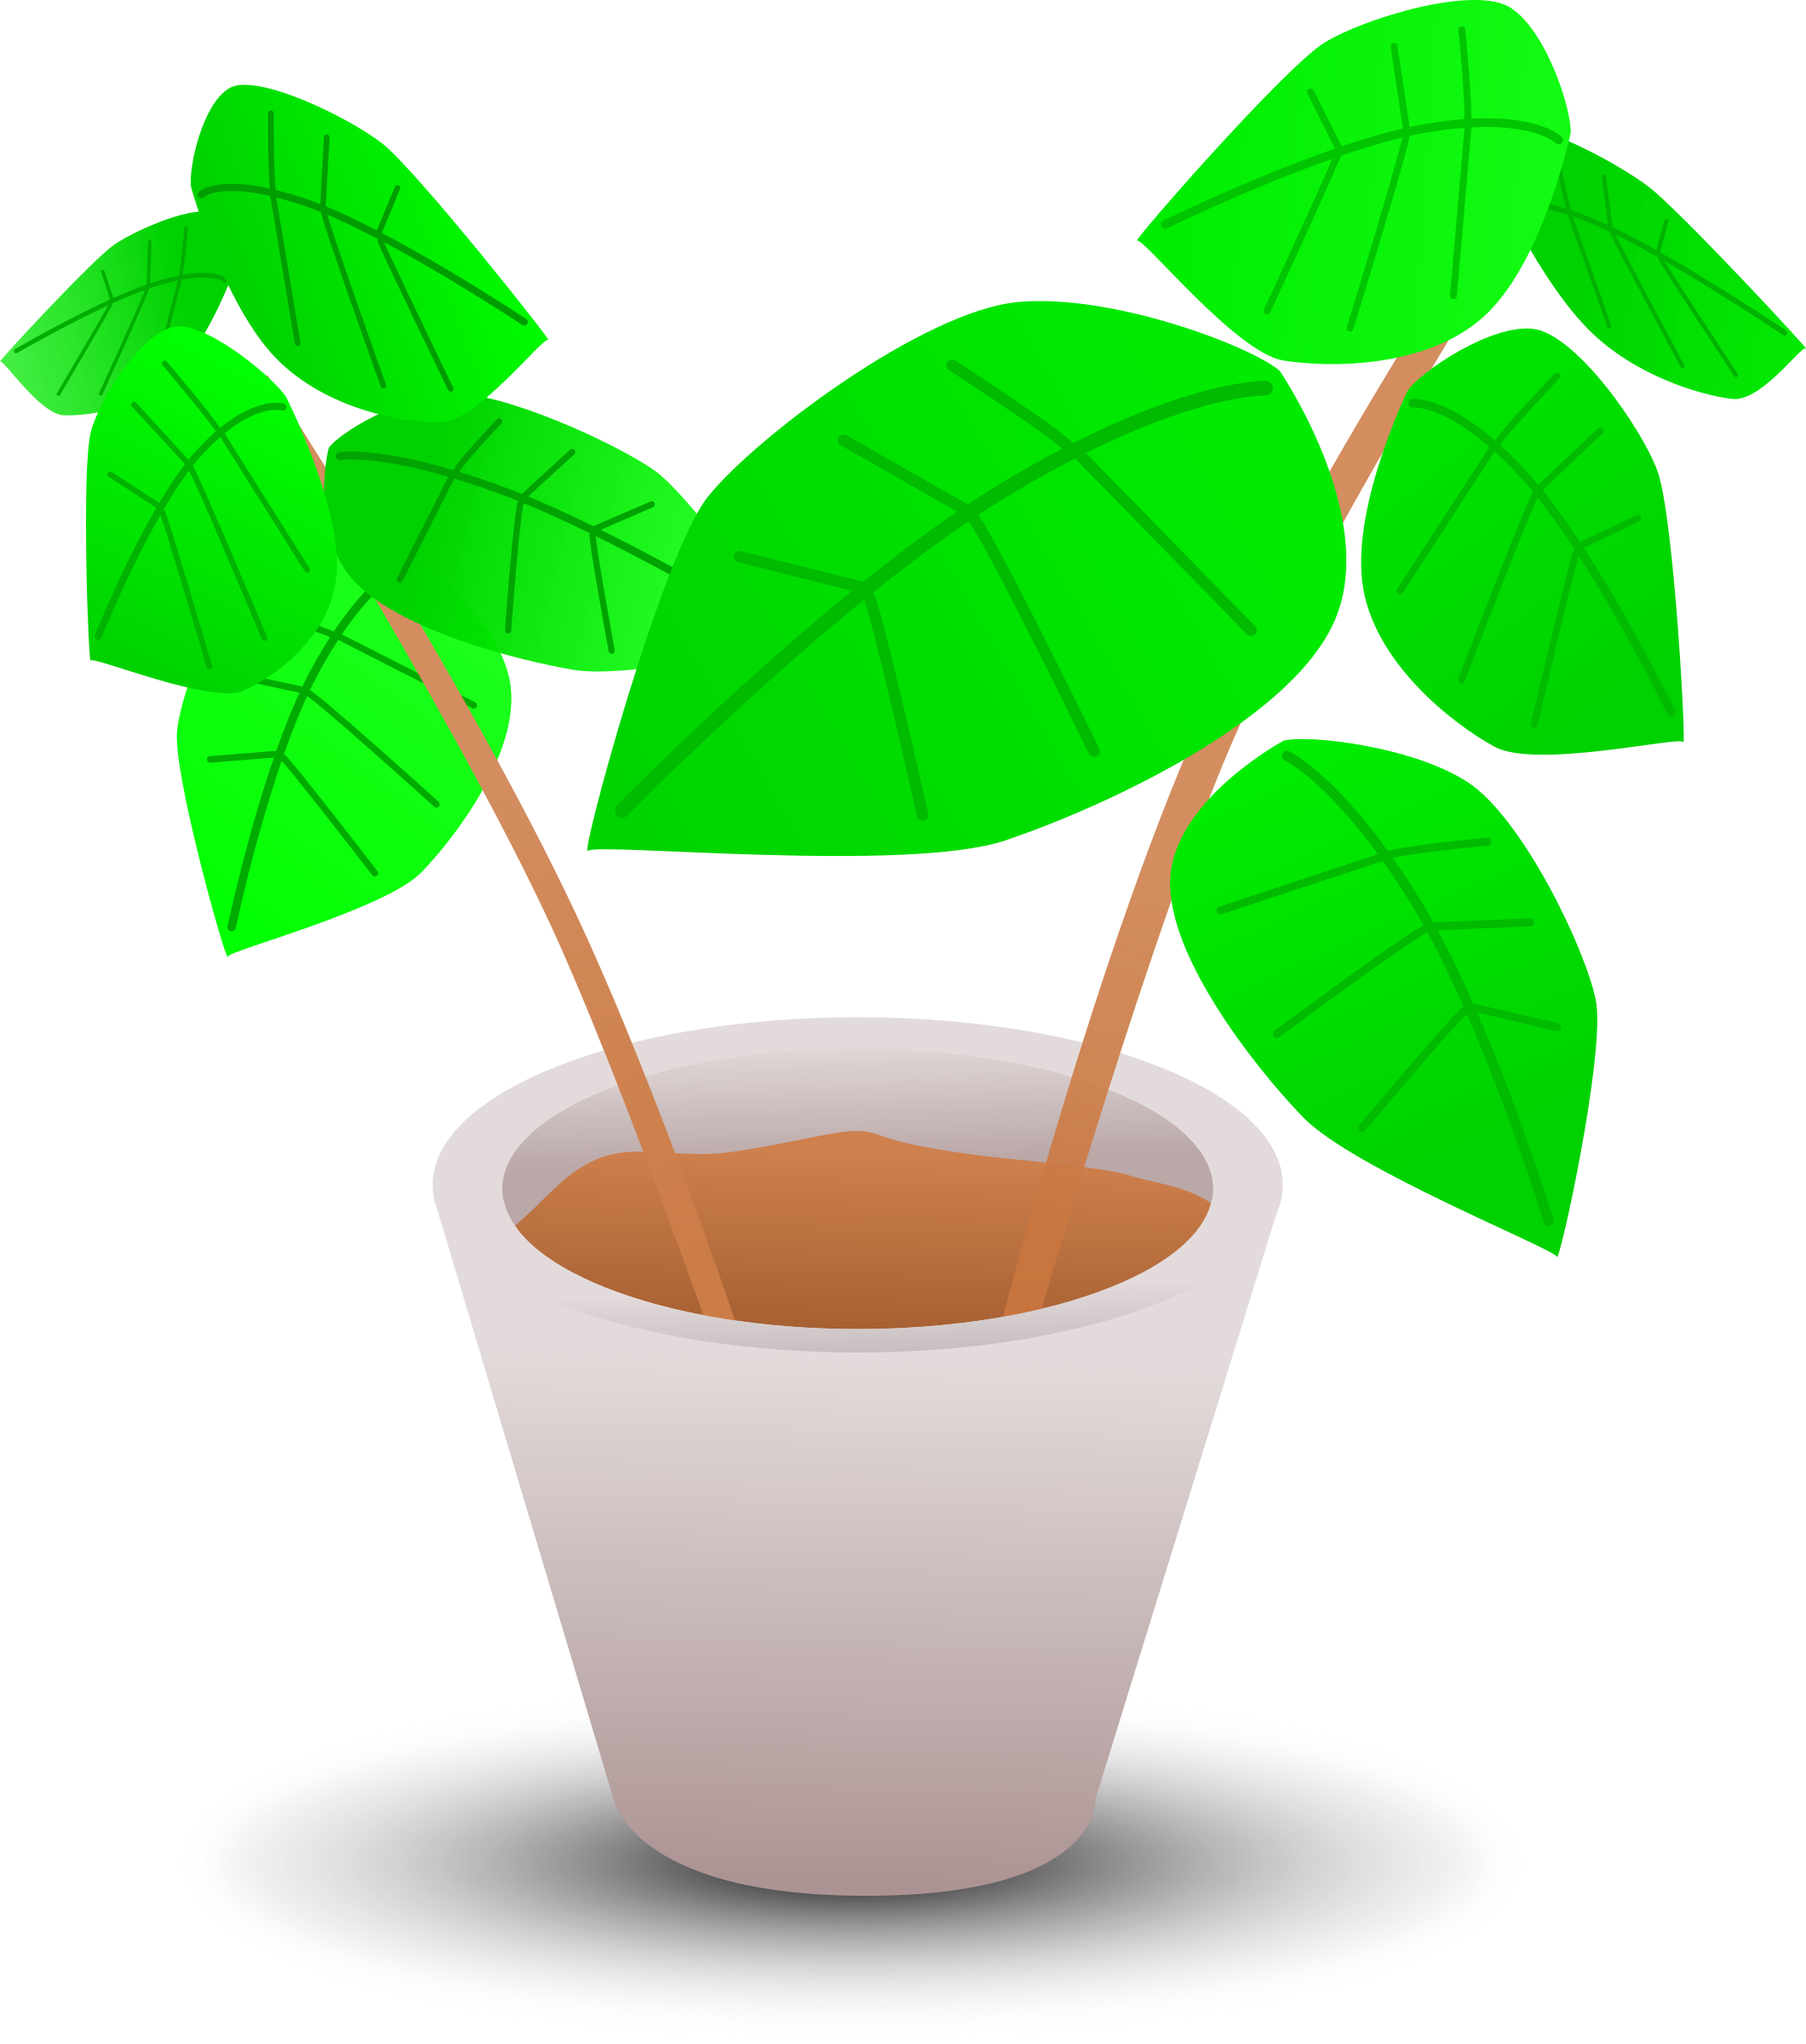 House plant clipart banner transparent stock Clipart - Plant in a pot 2 banner transparent stock